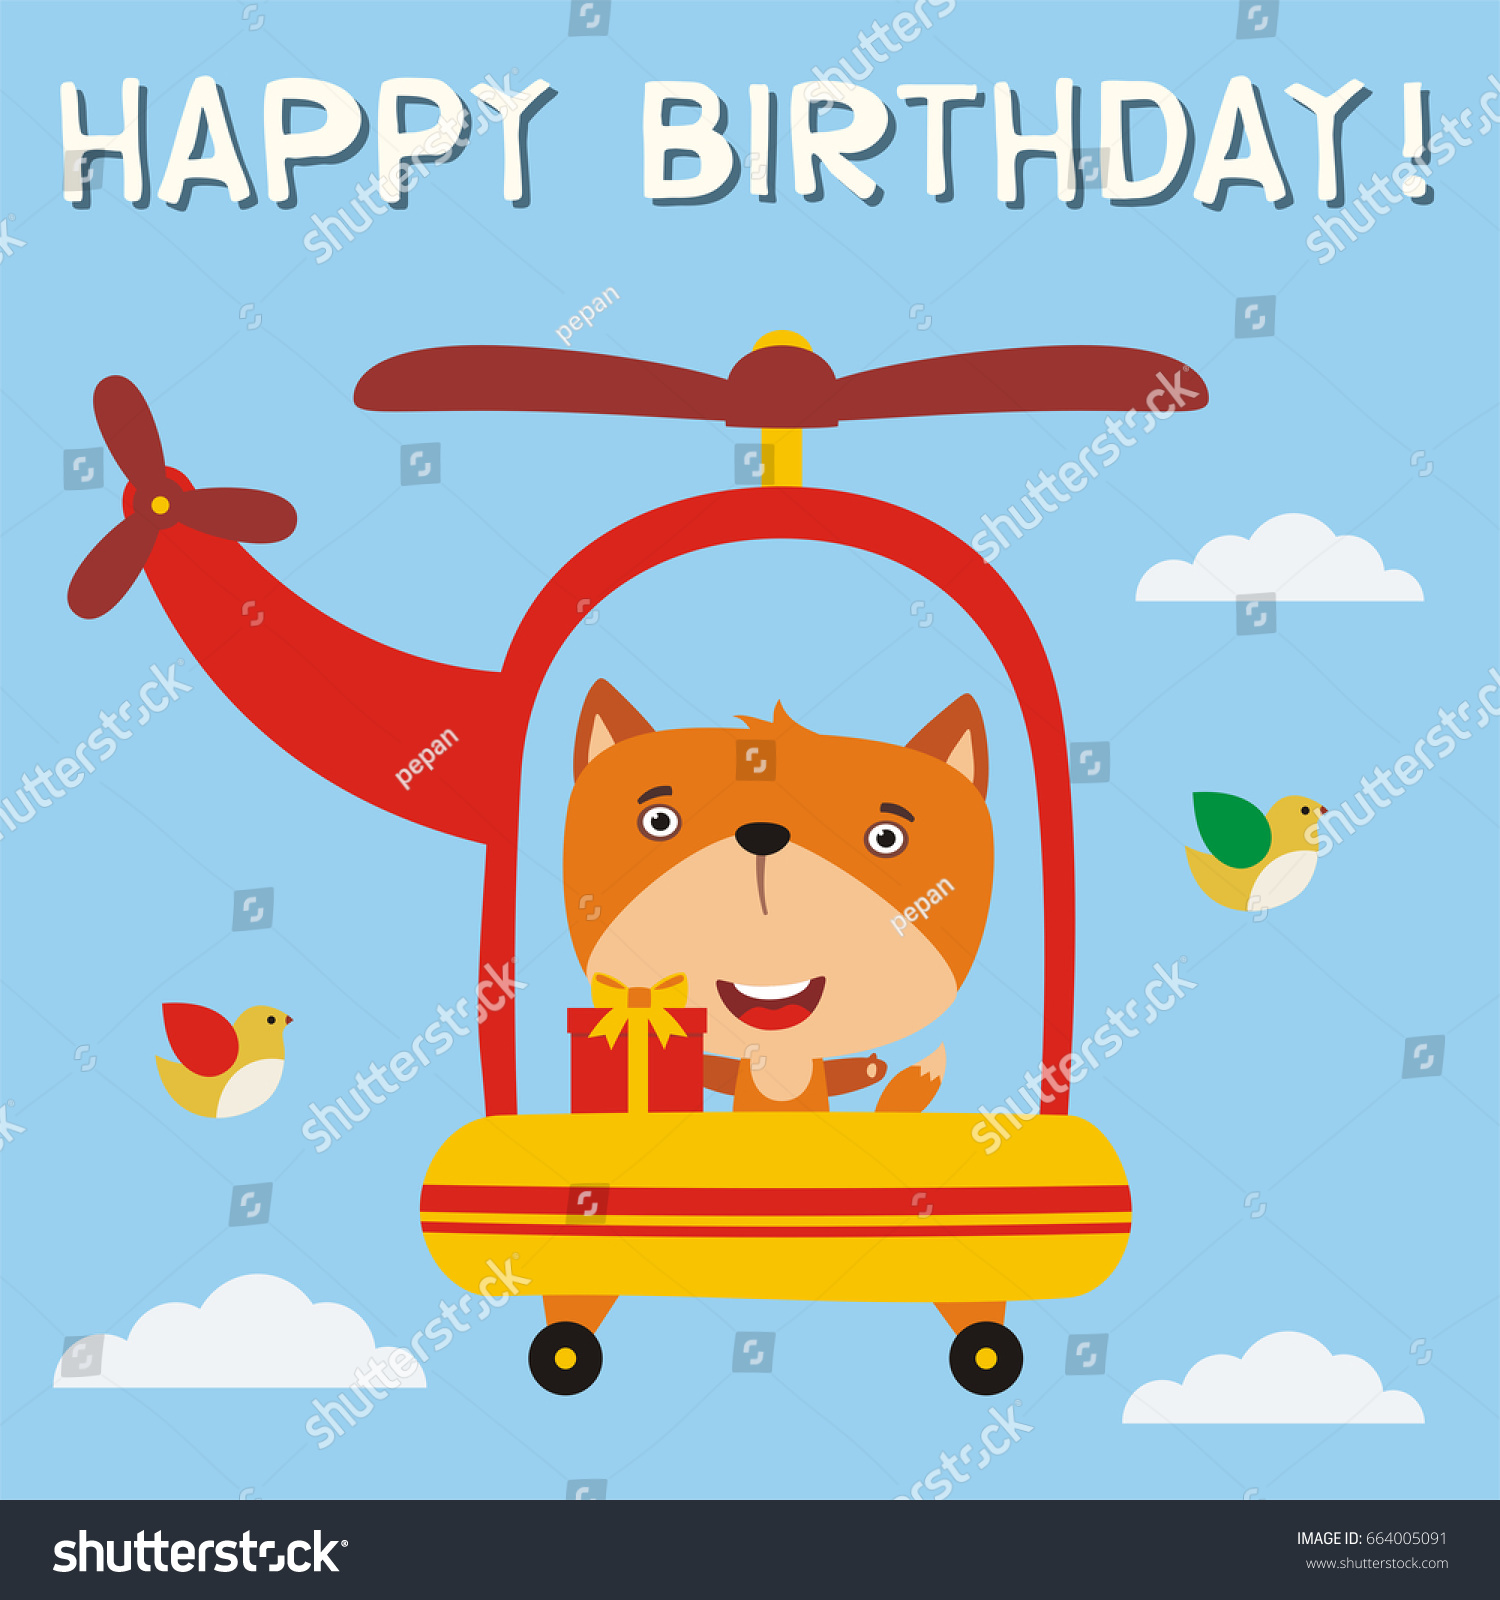 Happy birthday funny fox birthday gift stock vector 664005091 happy birthday funny fox with birthday gift flying on helicopter birthday card with fox negle Image collections